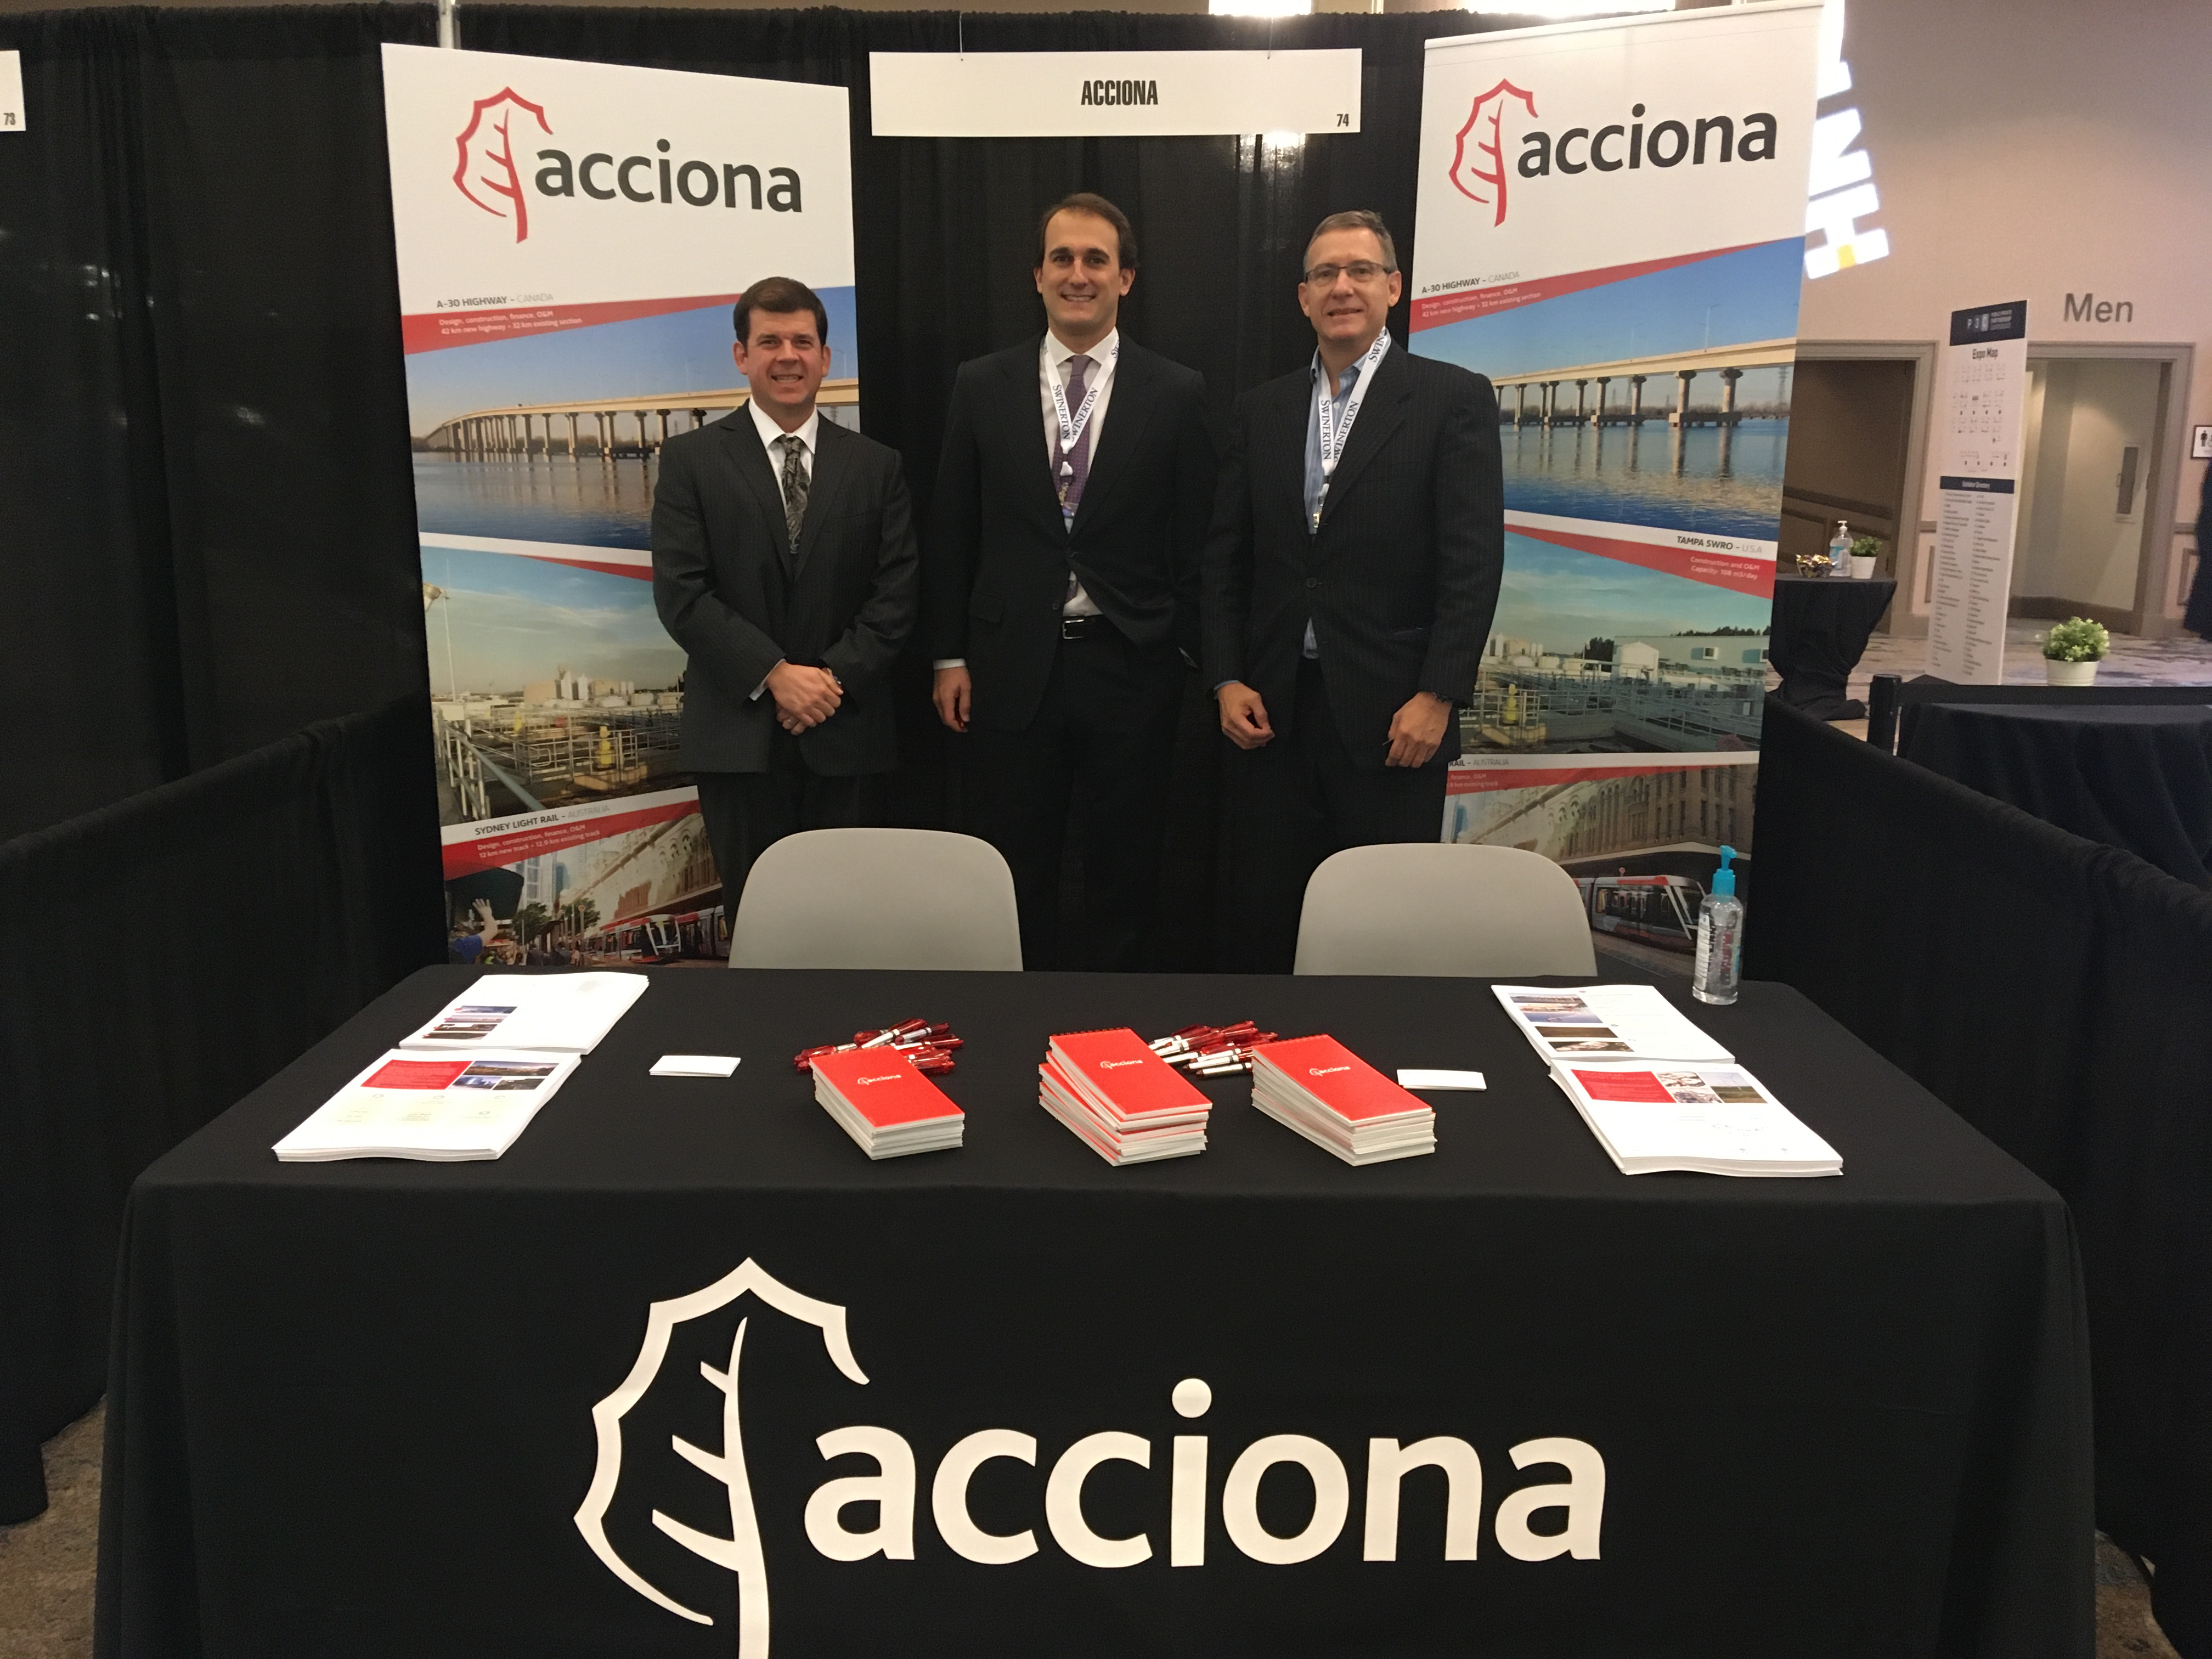 ACCIONA patrocina la conferencia P3 en Dallas (EEUU)